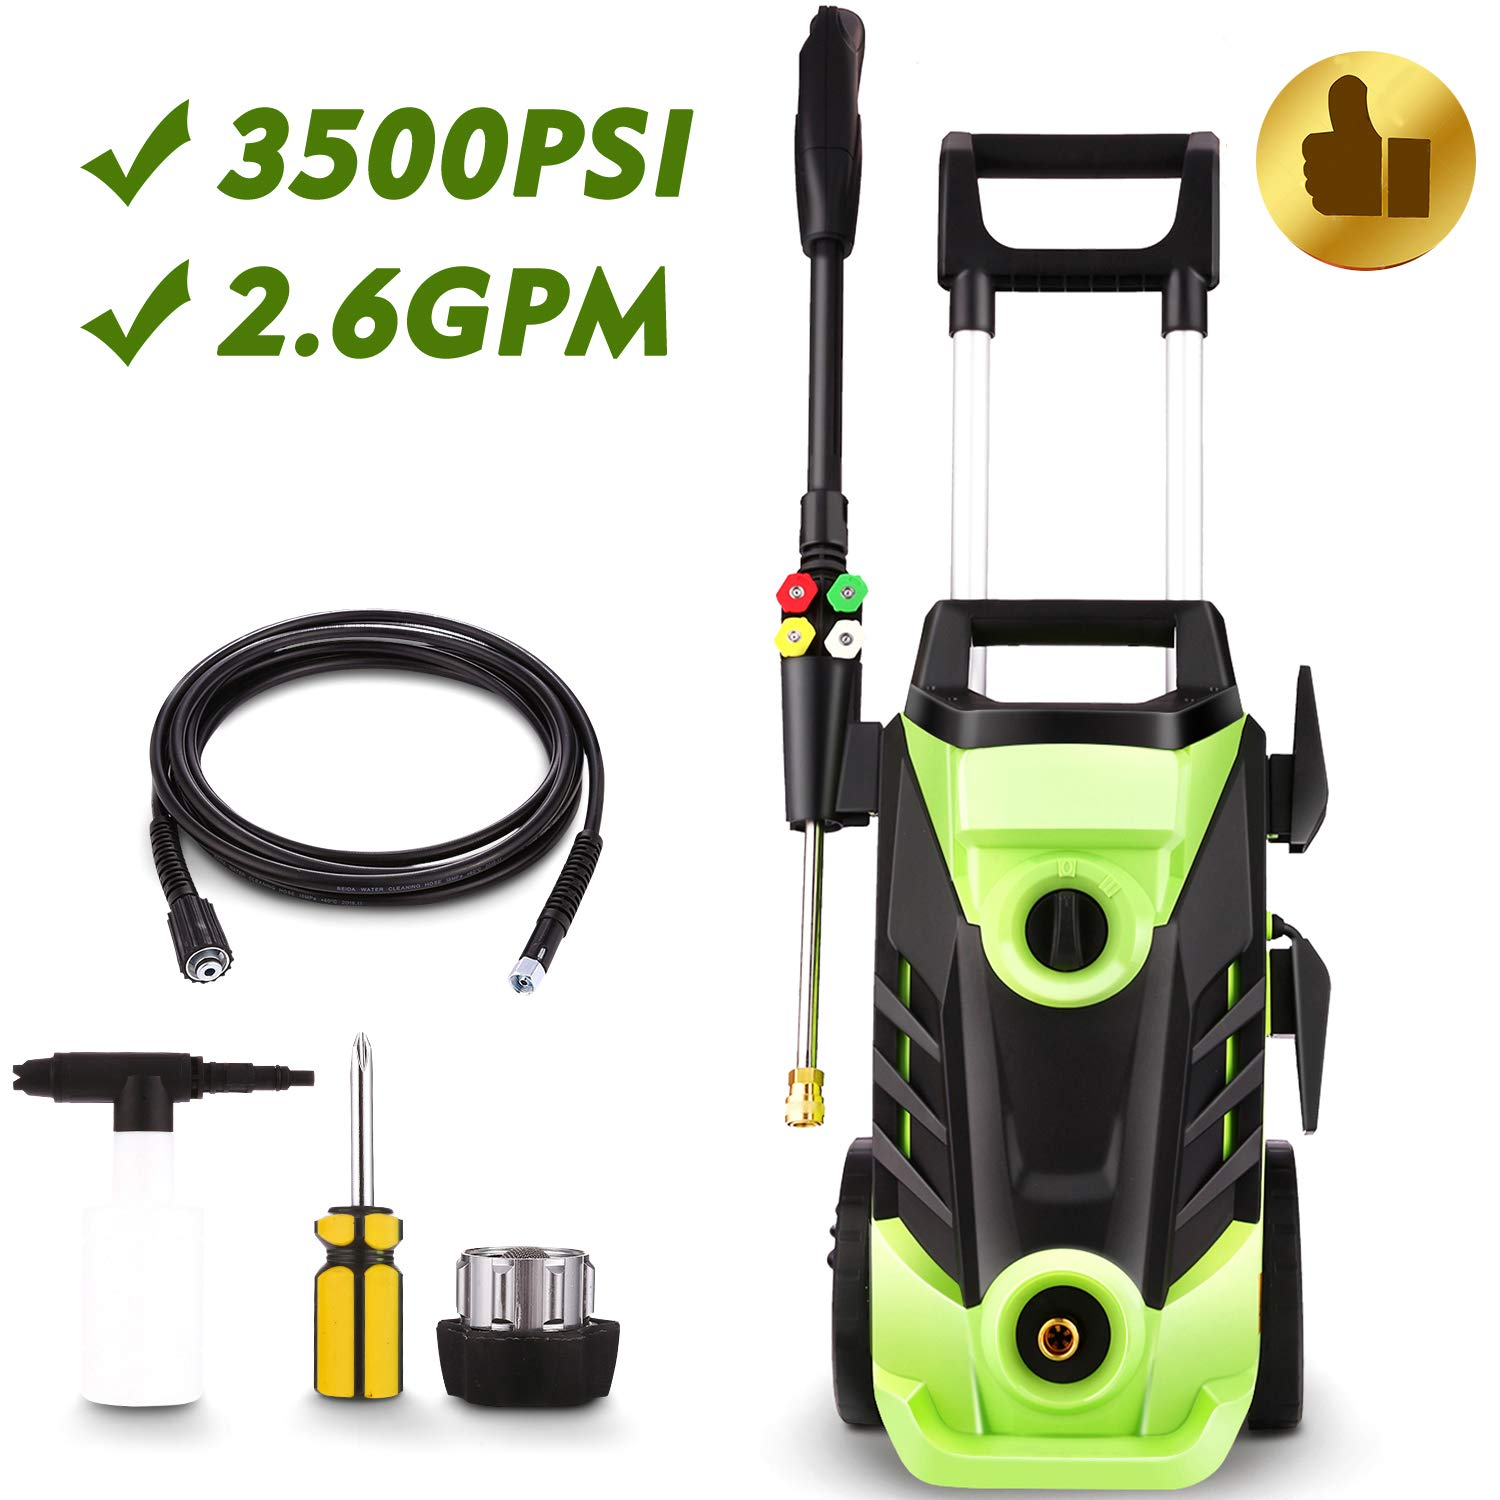 Homdox 3500 PSI Electric Pressure Washer, 1800W Power Washer, 2 6GPM High  Pressure Washer, Professional Washer Cleaner Machine with 4 Interchangeable